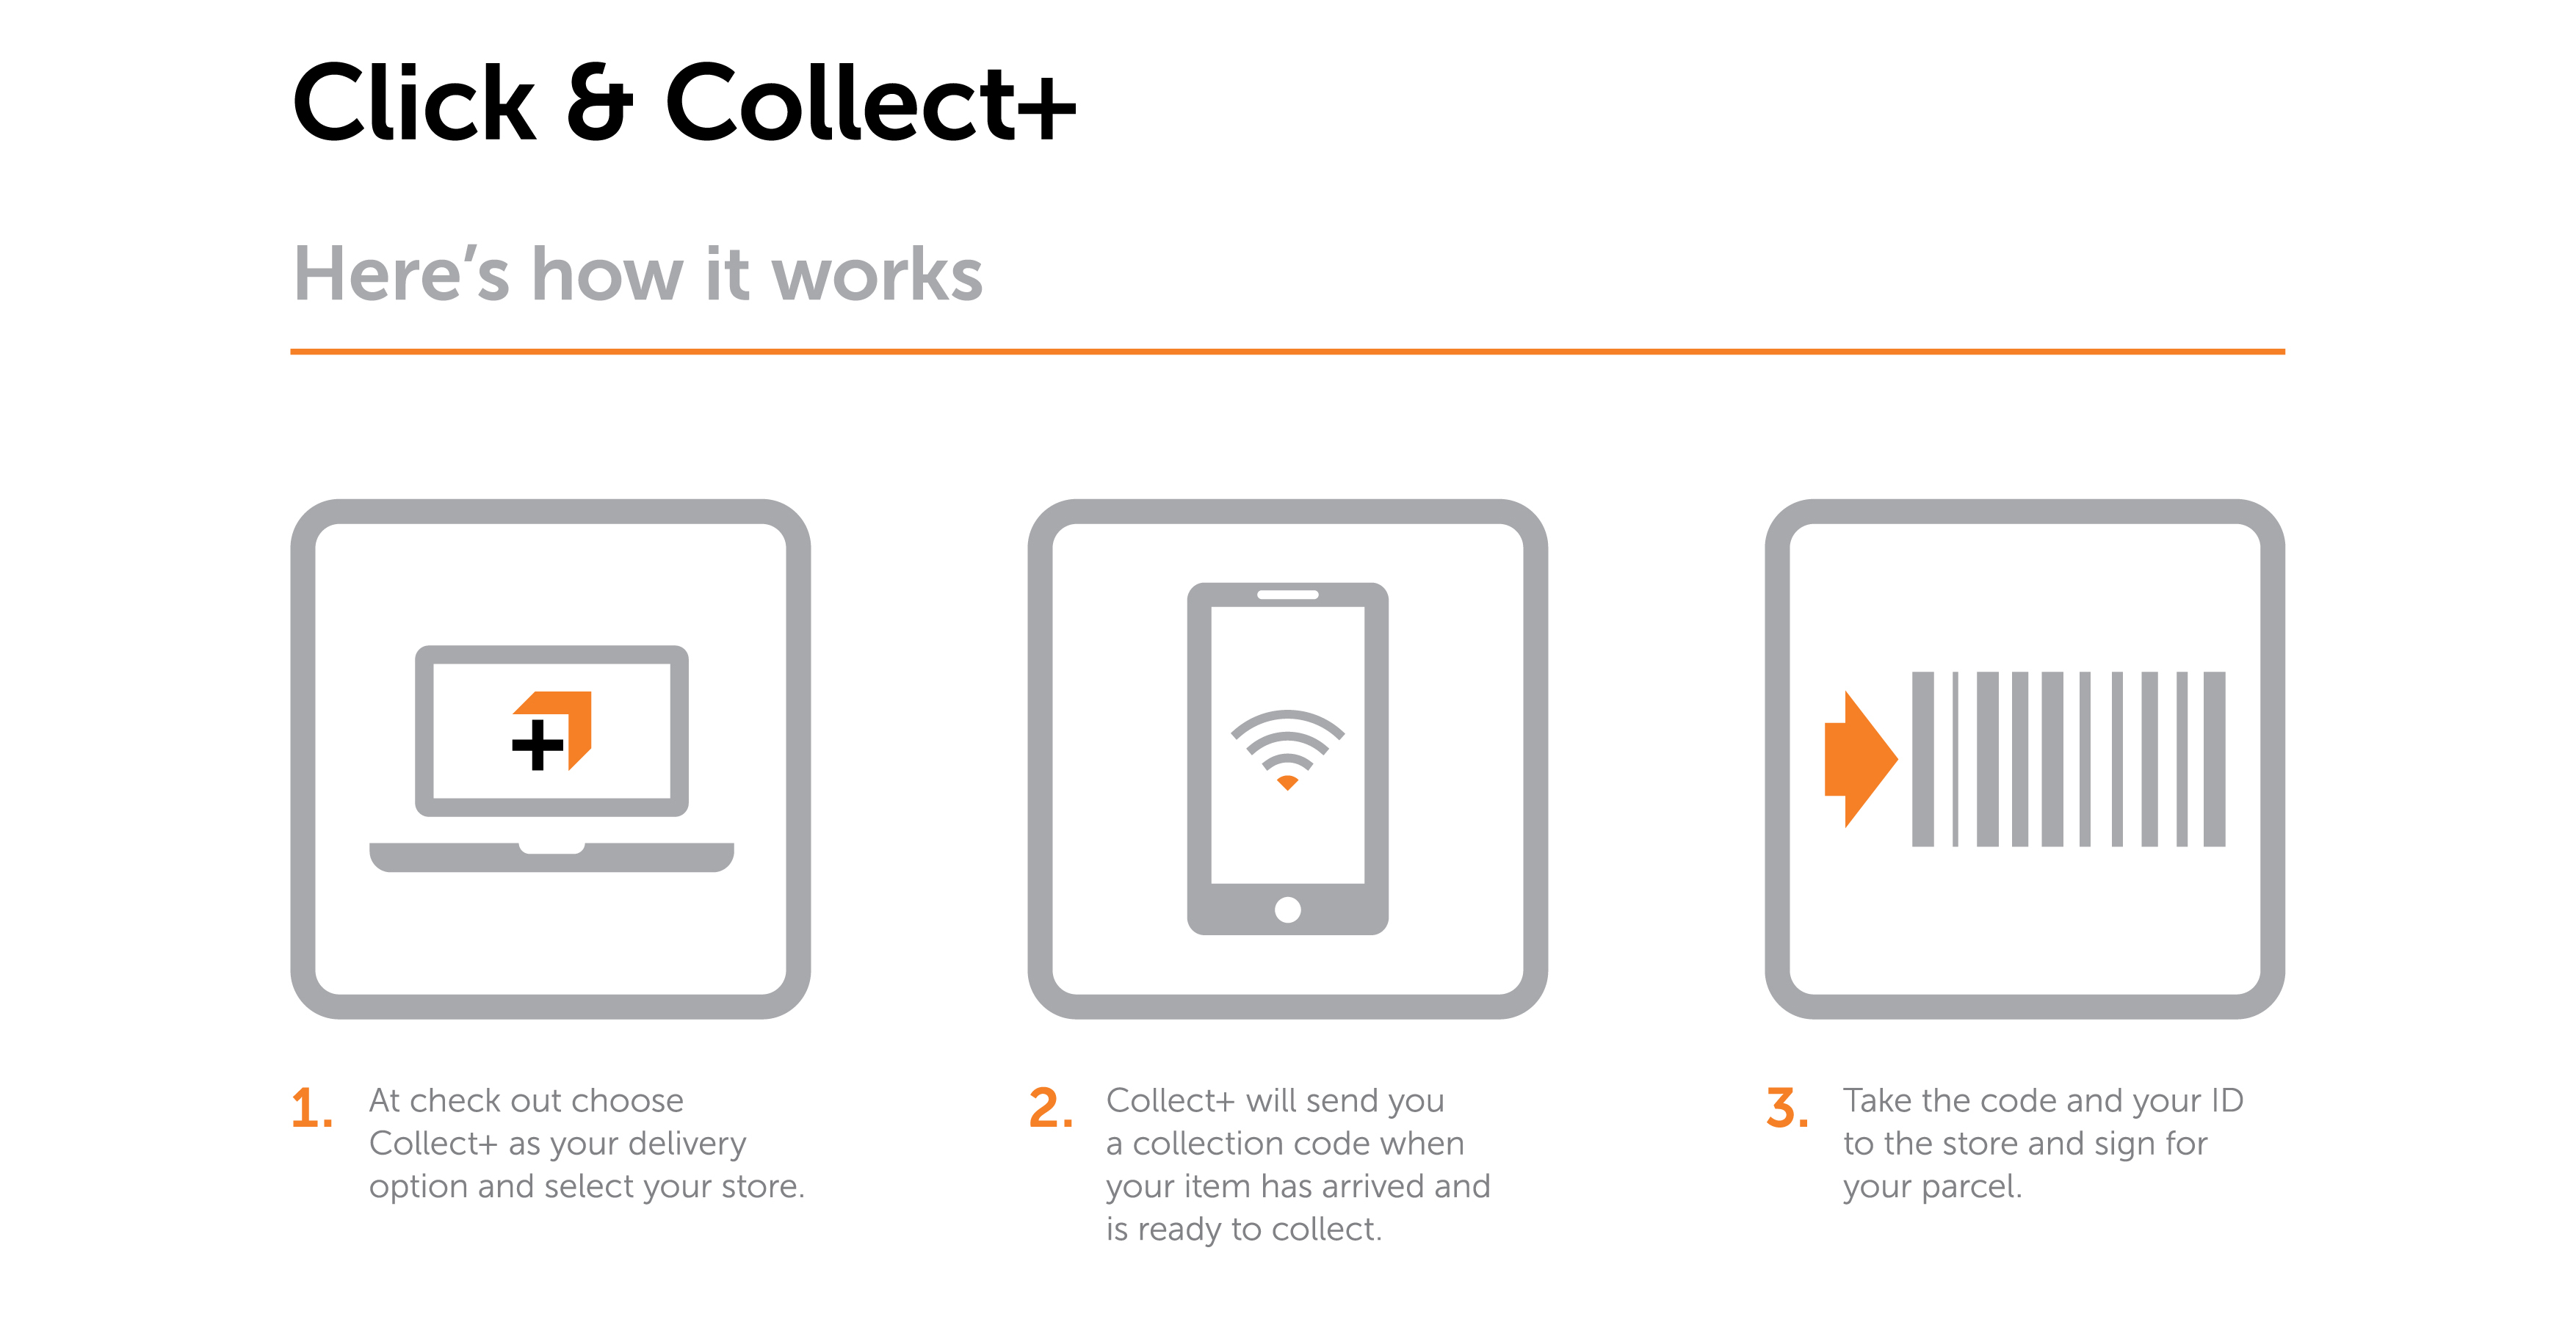 How Collect+ Works